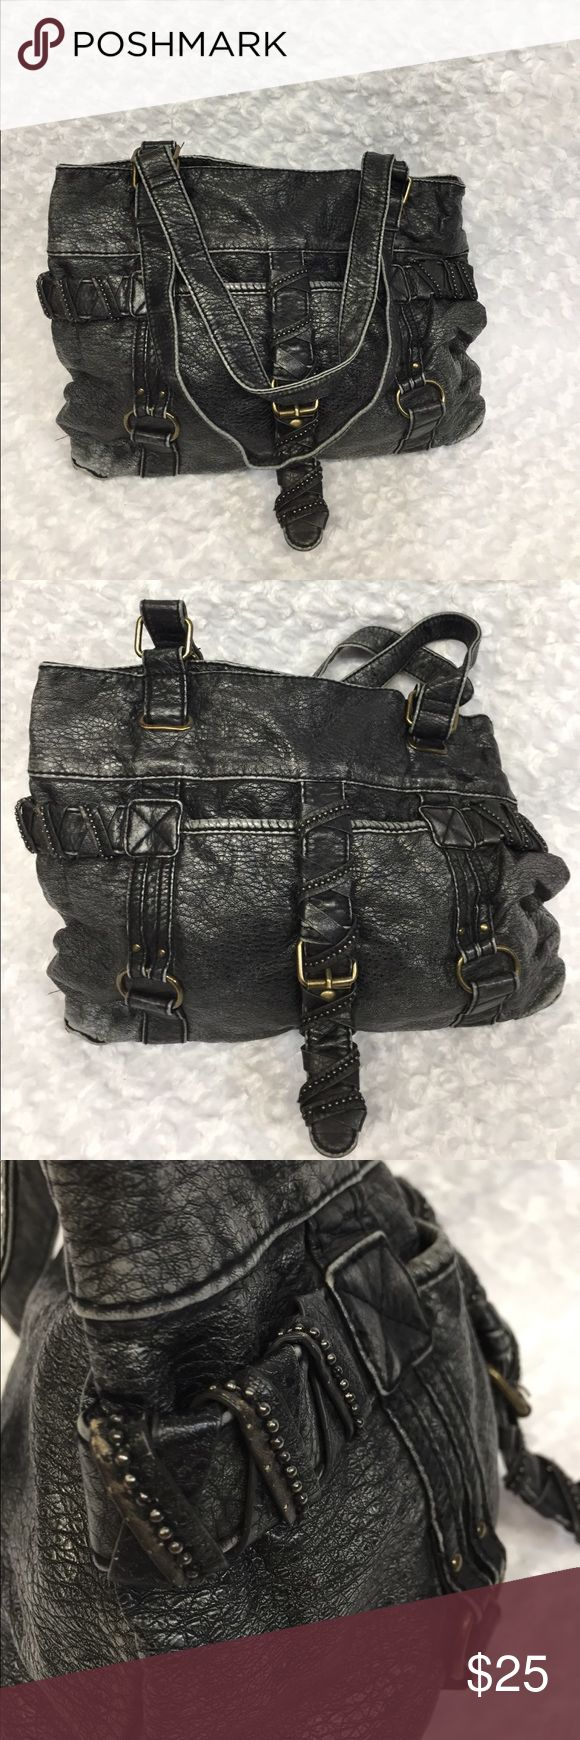 ( Converse ) Woman's Bag Pre-owned Converse Bags